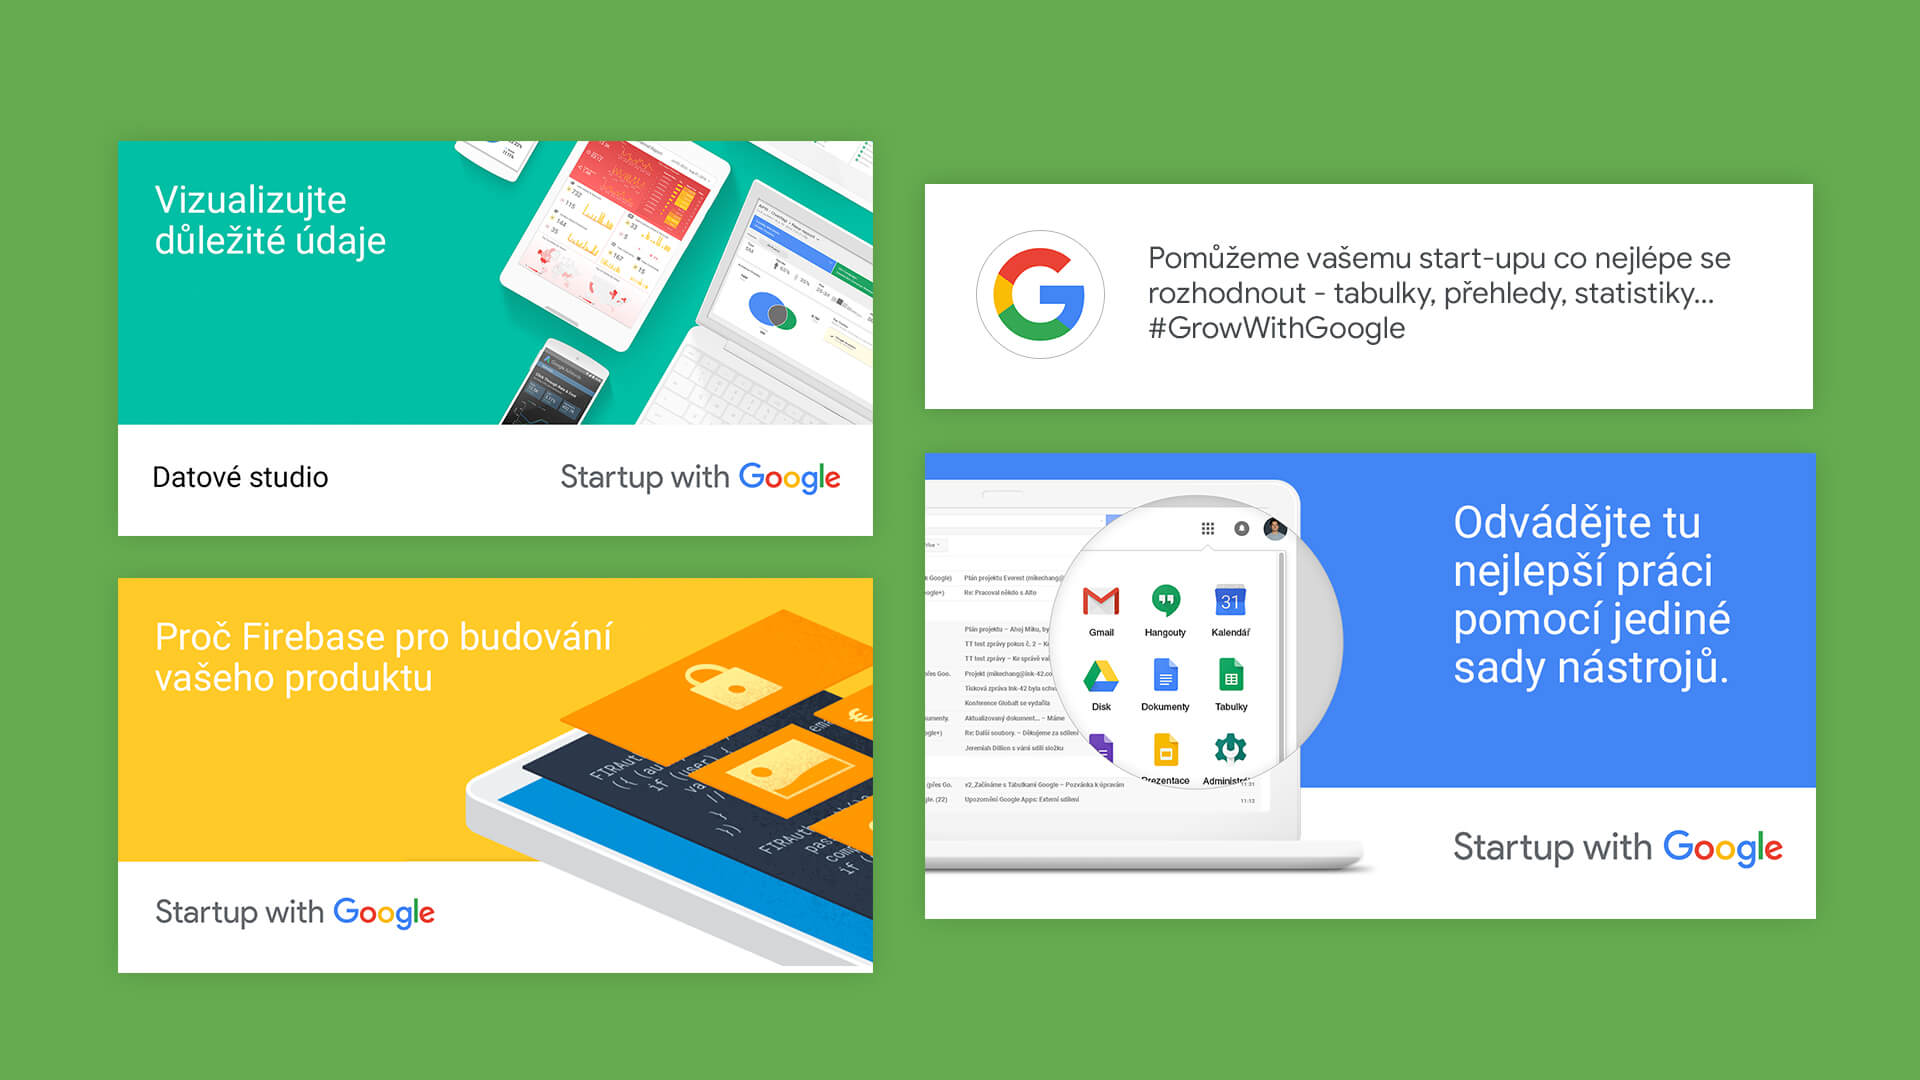 marcellacko-startup-with-google_11